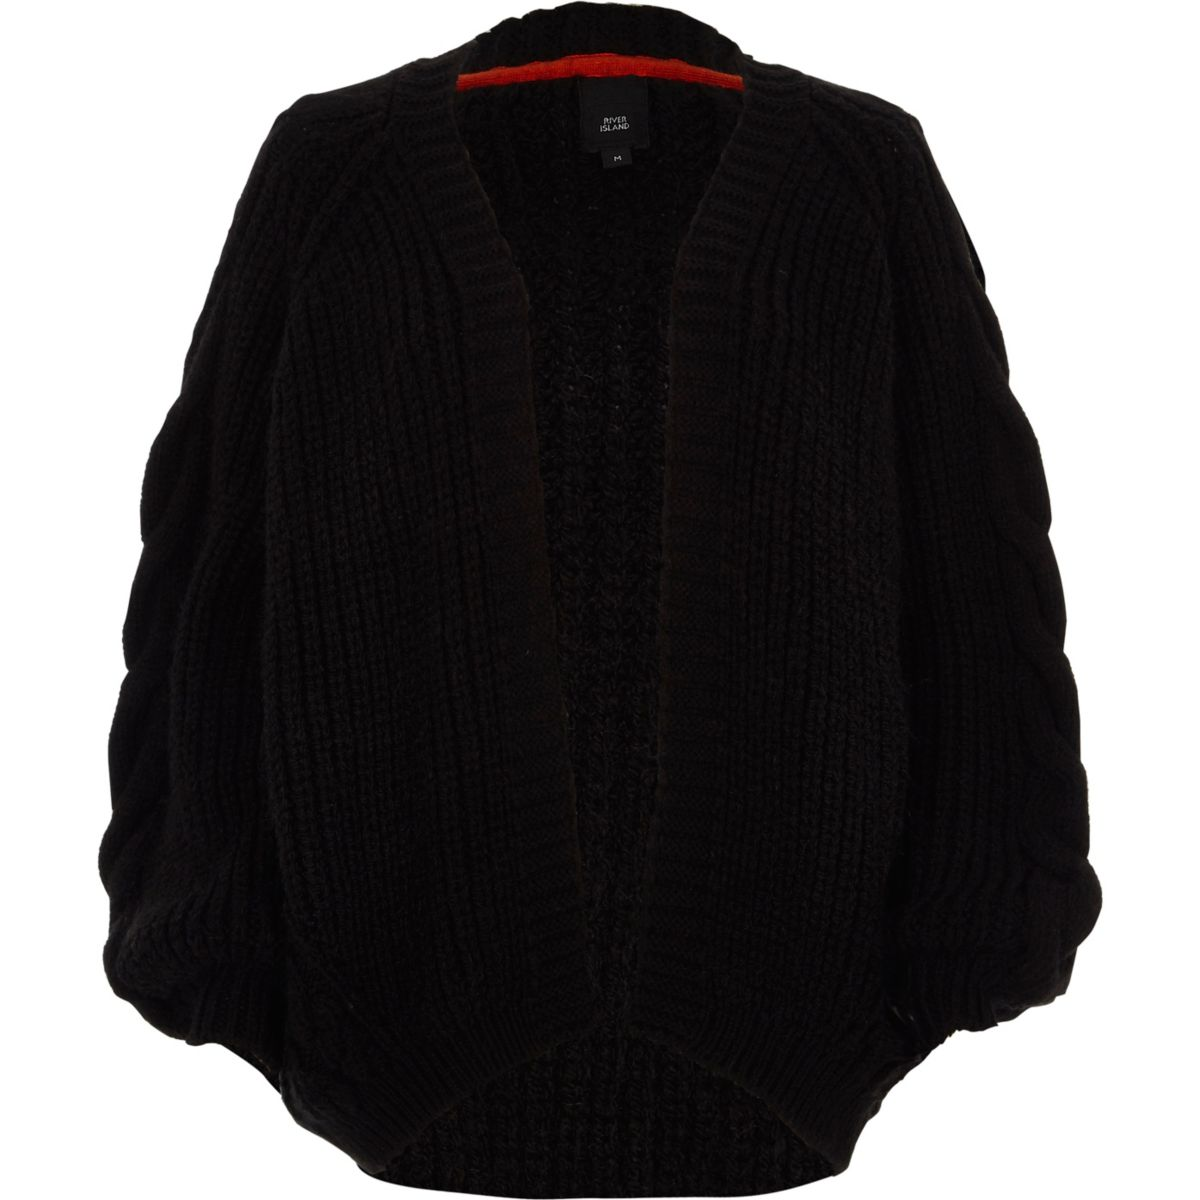 Black chunky cable kit cardigan - Cardigans - Knitwear - women